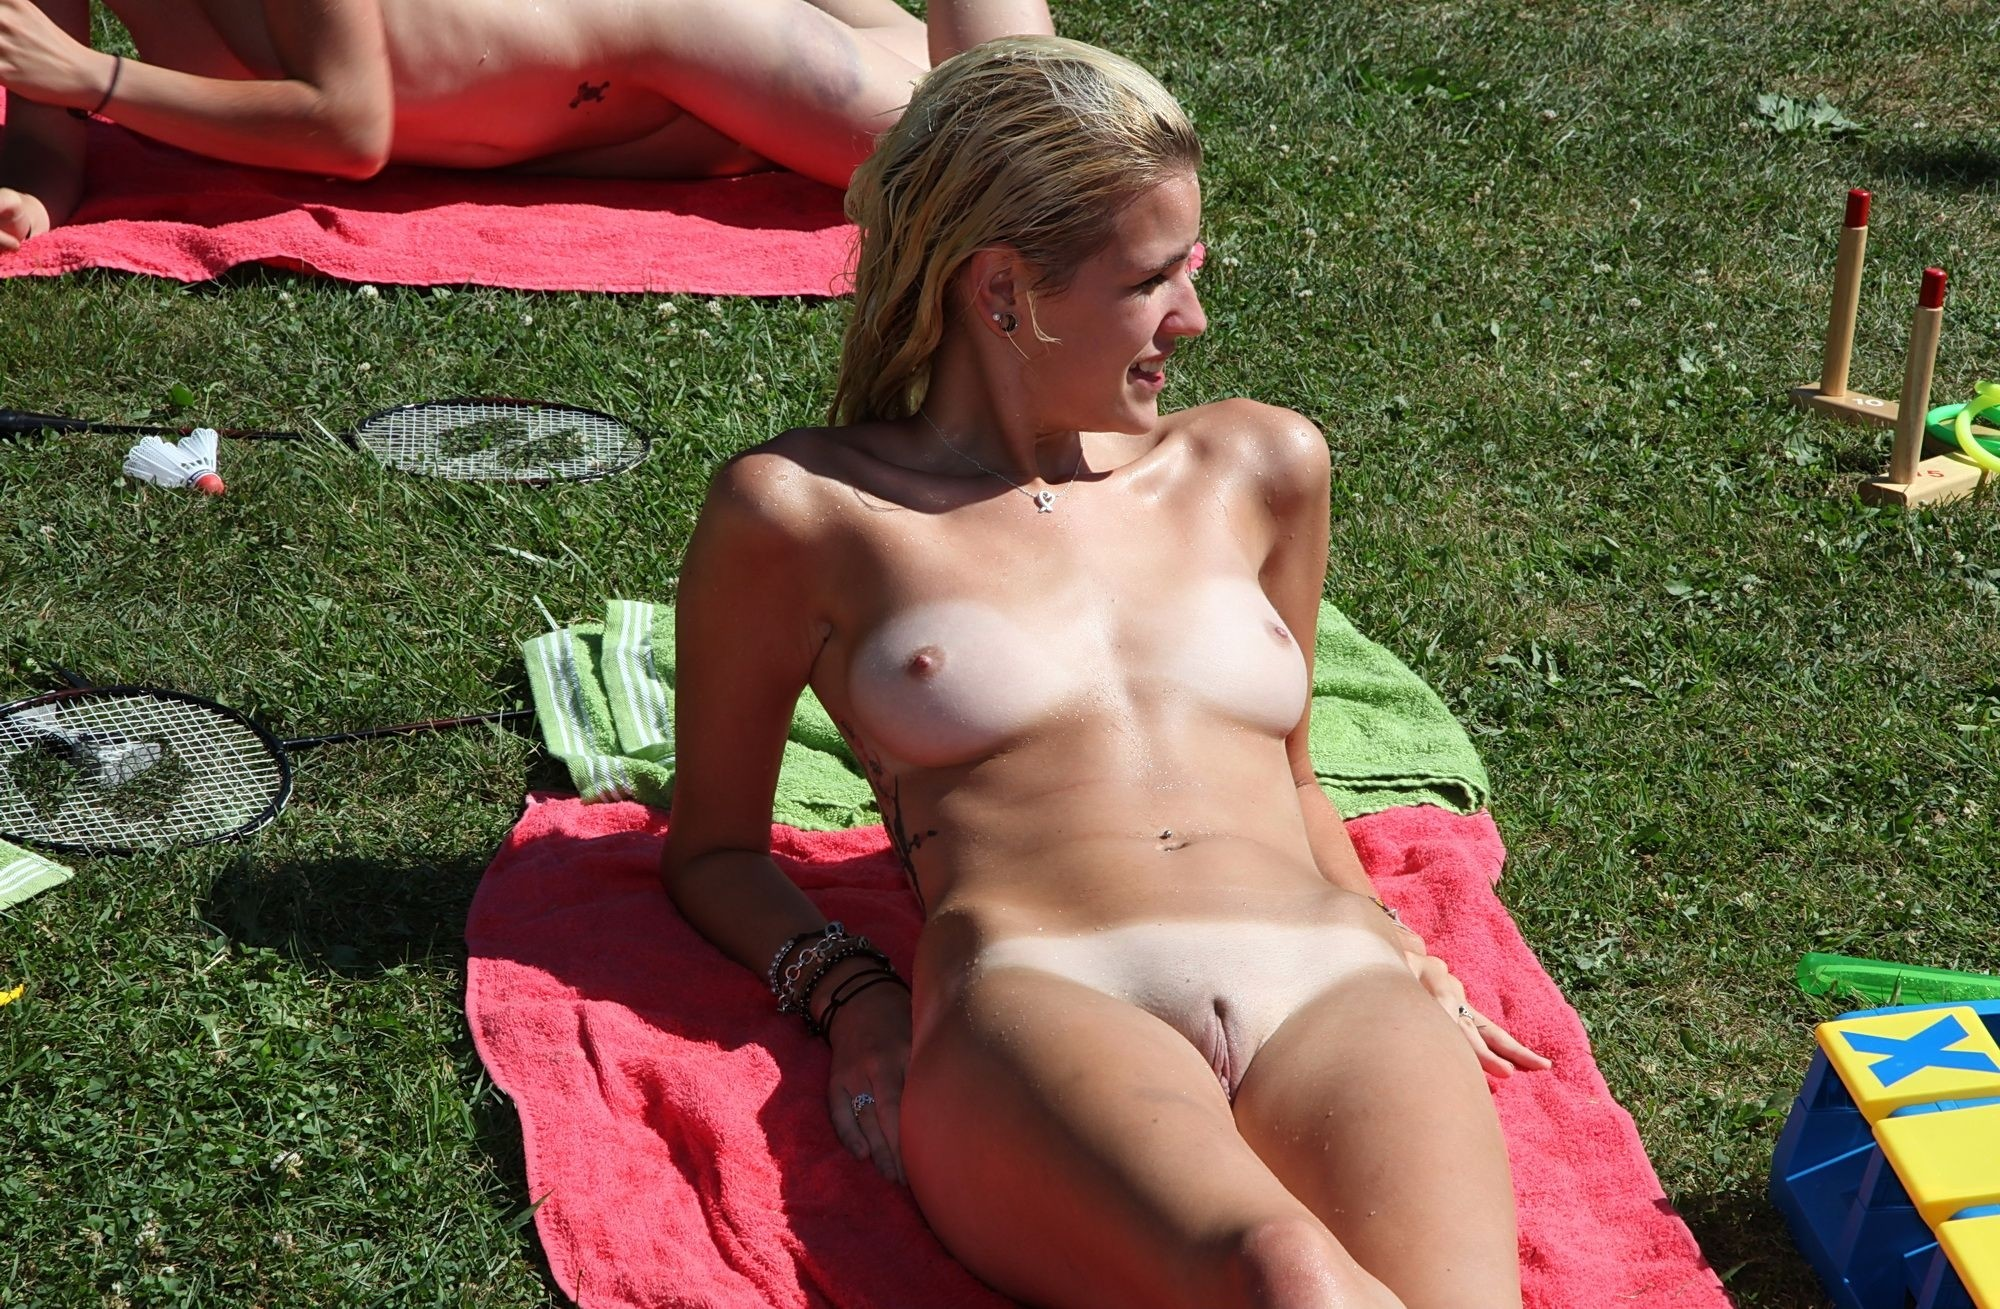 Real amateur public nudity